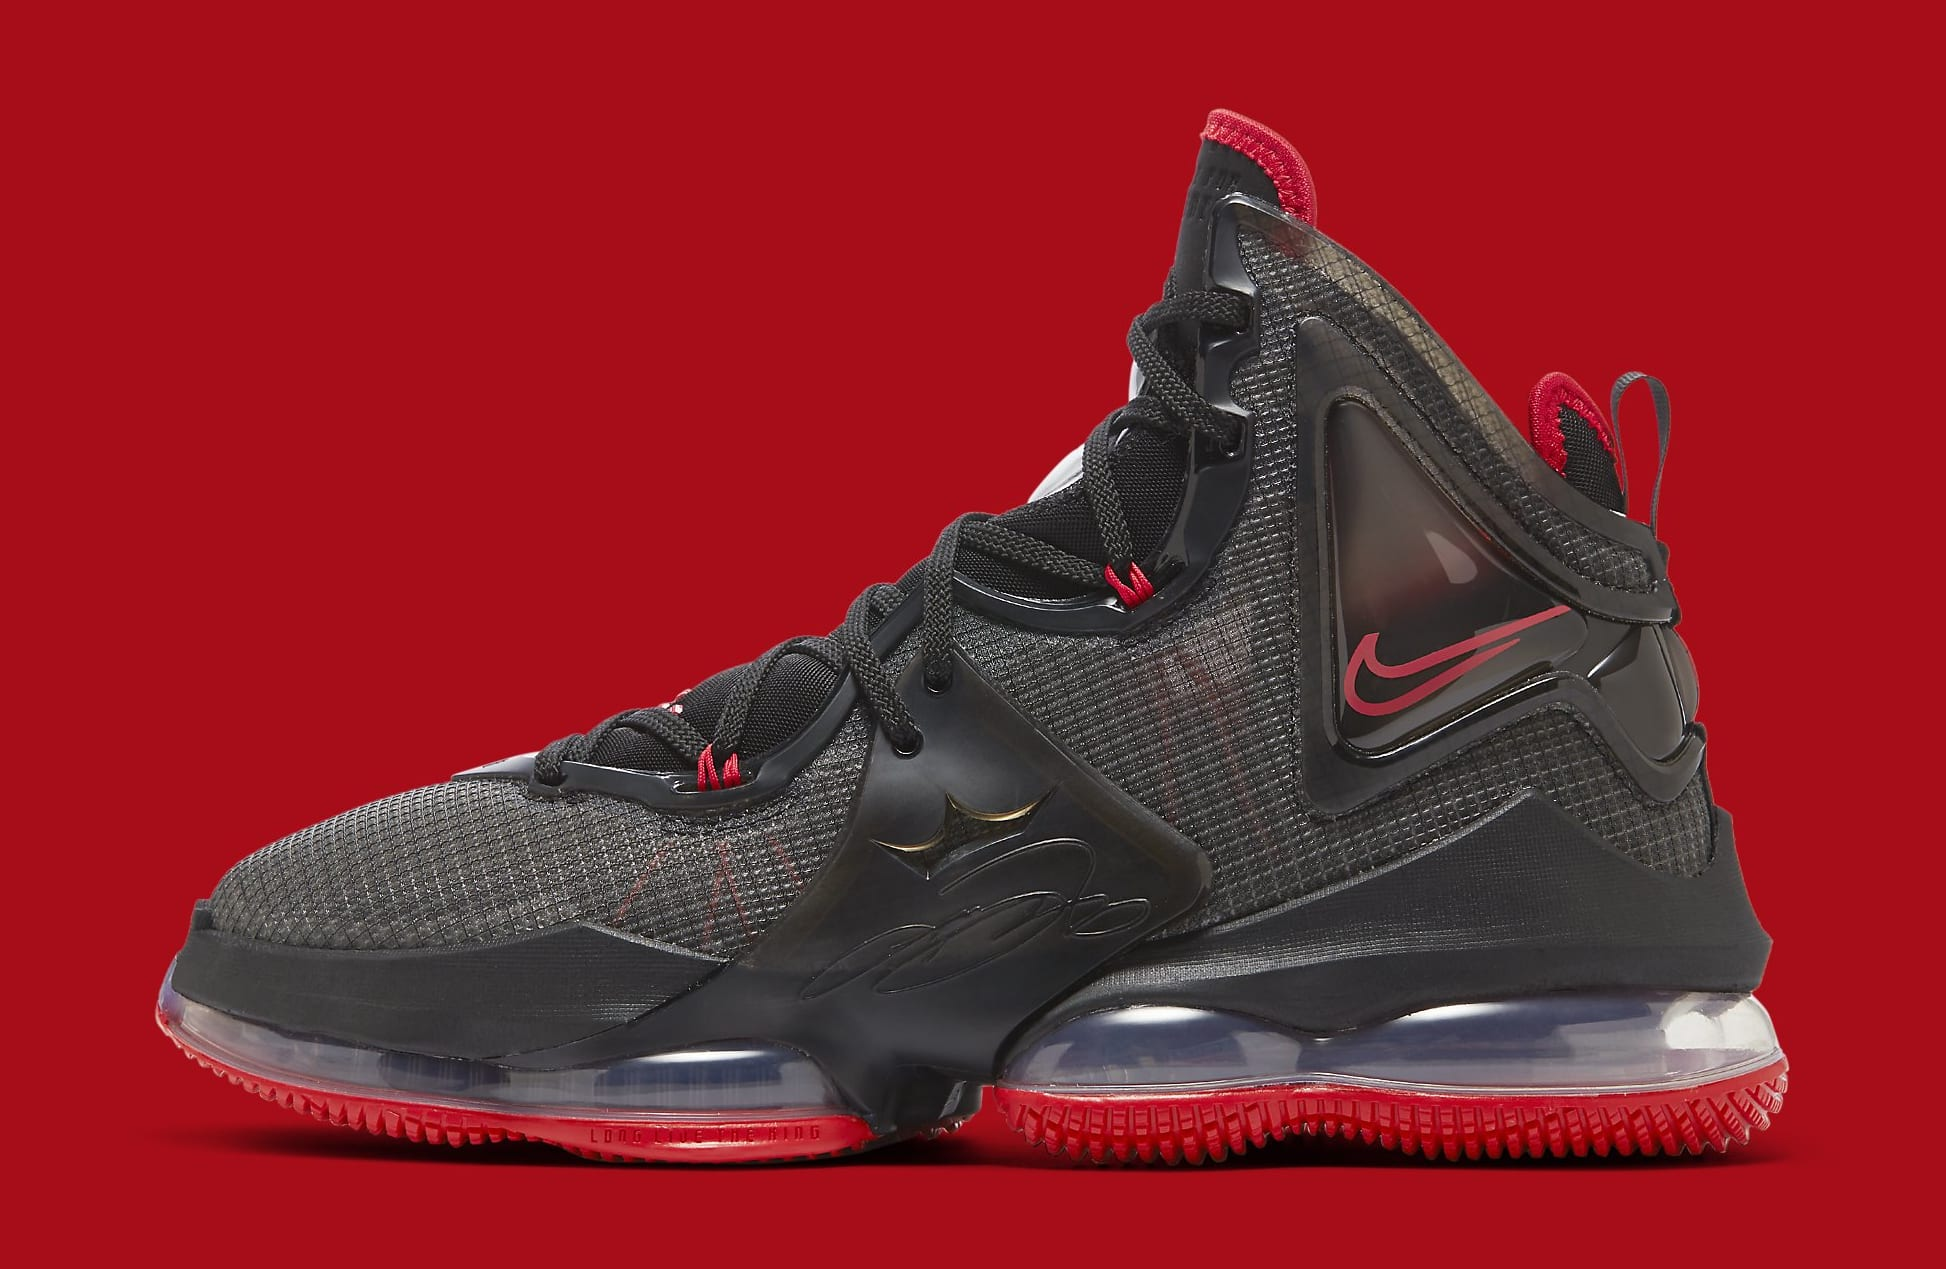 Nike LeBron 19 'Black/Red' DC9340-001 Lateral